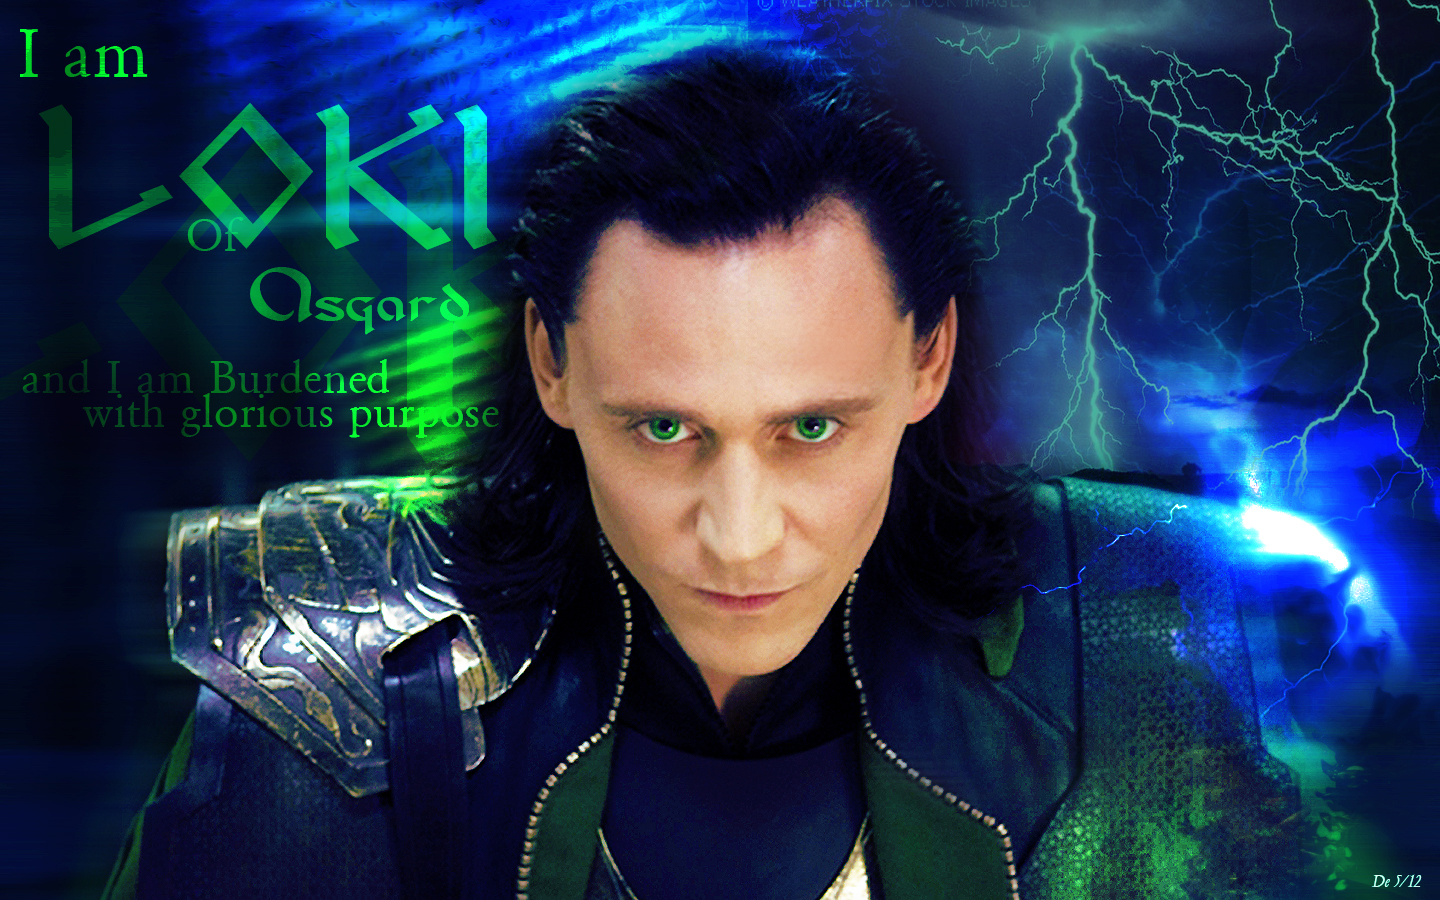 Loki - Loki (Thor 2011) Wallpaper (32733756) - Fanpop